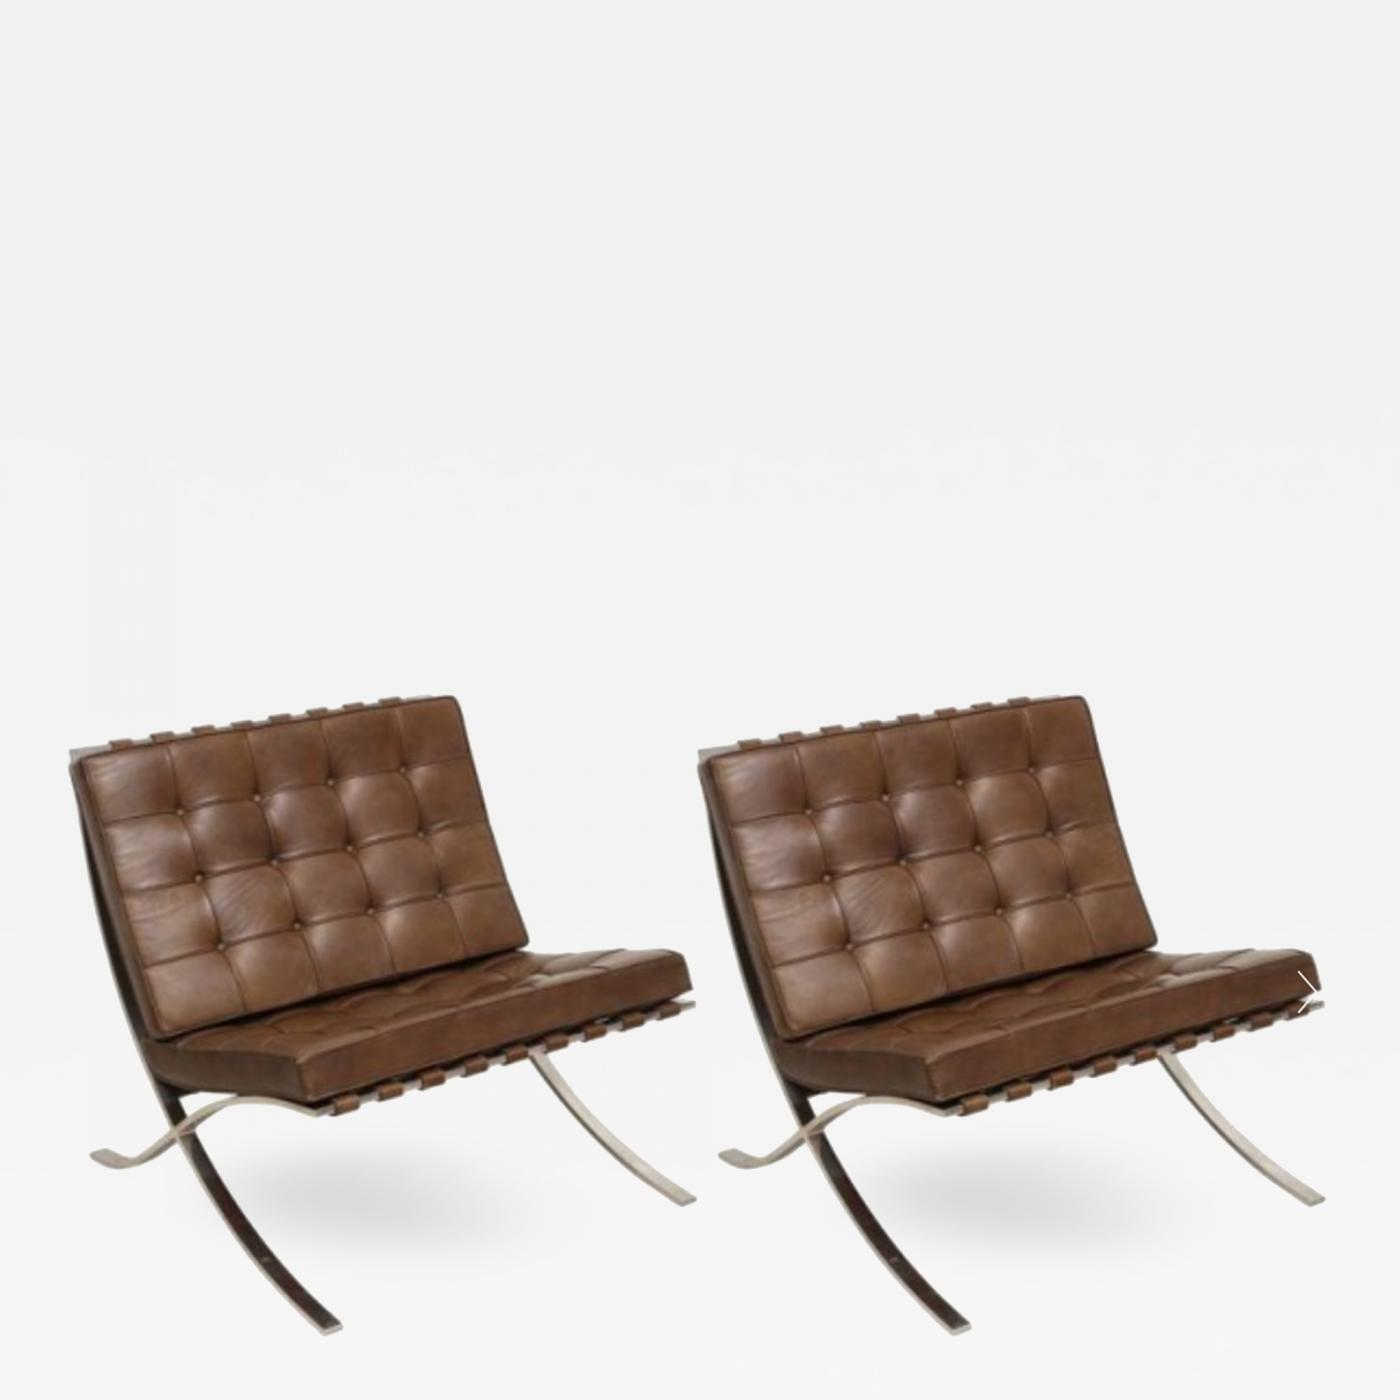 Listings / Furniture / Seating / Lounge Chairs · Pair Of Vintage Leather  Brown Barcelona Chairs